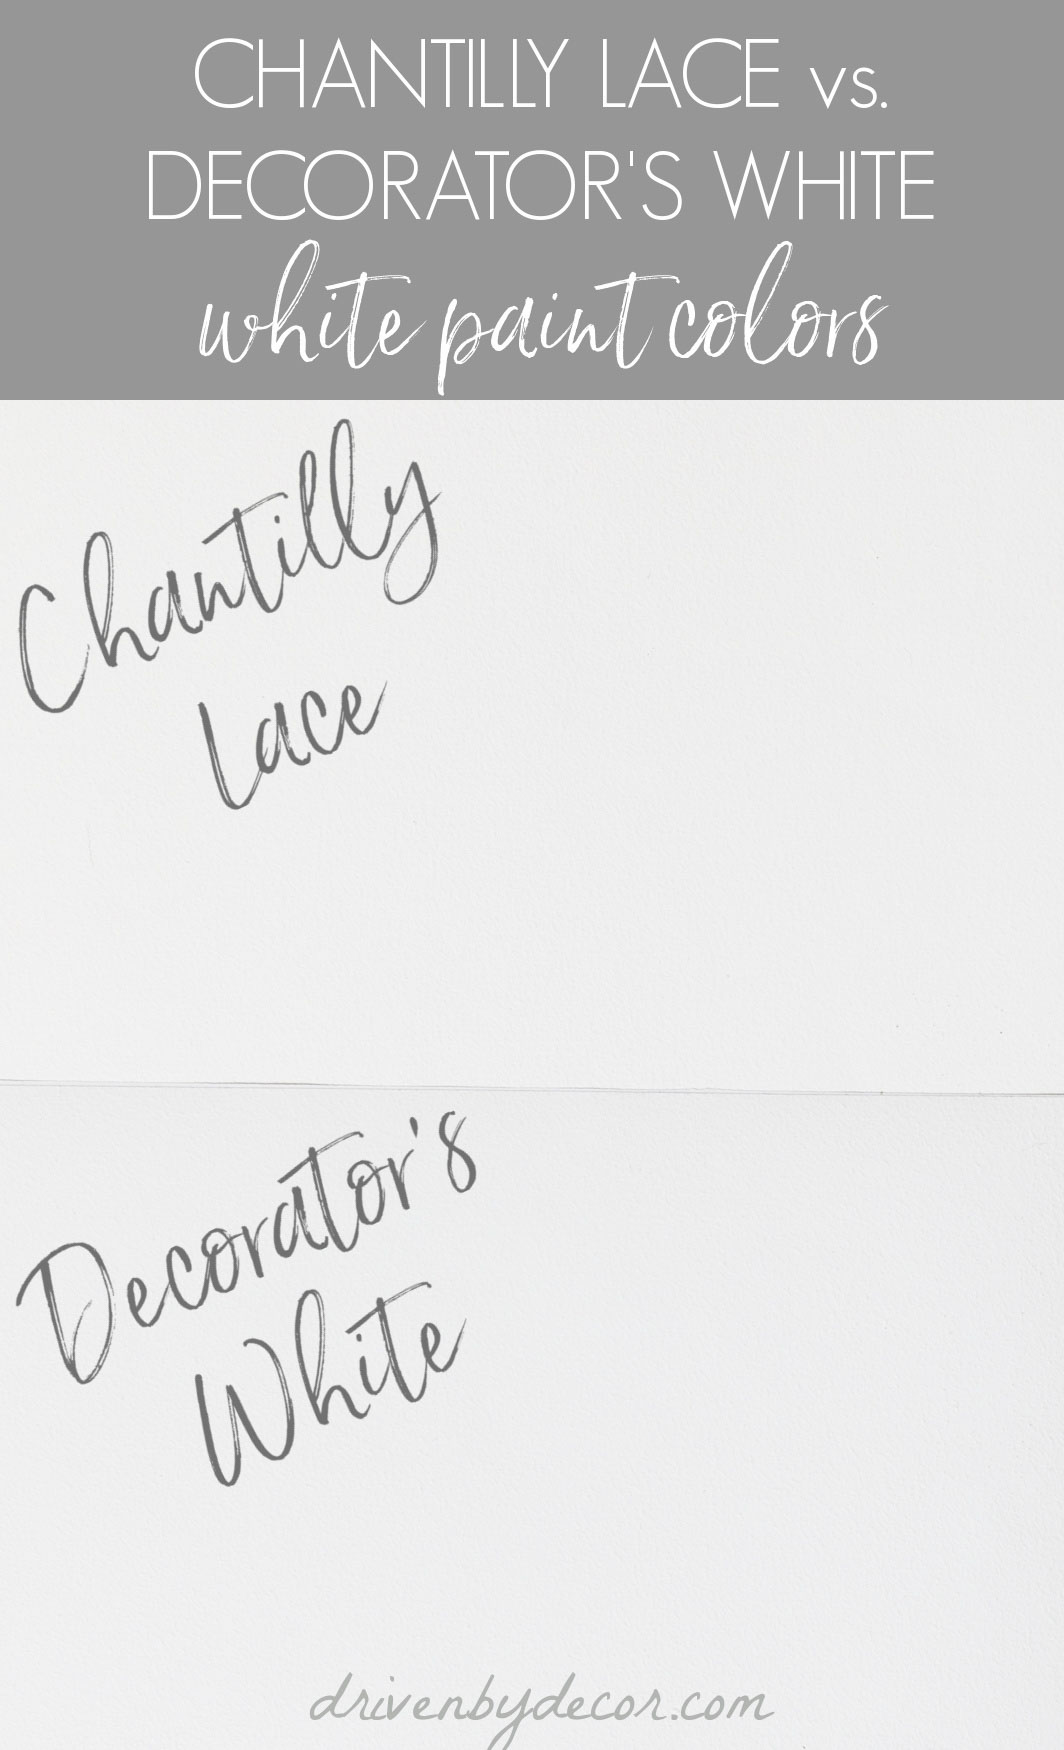 Benjamin Moore Chantilly Lace versus Decorator's White paint colors